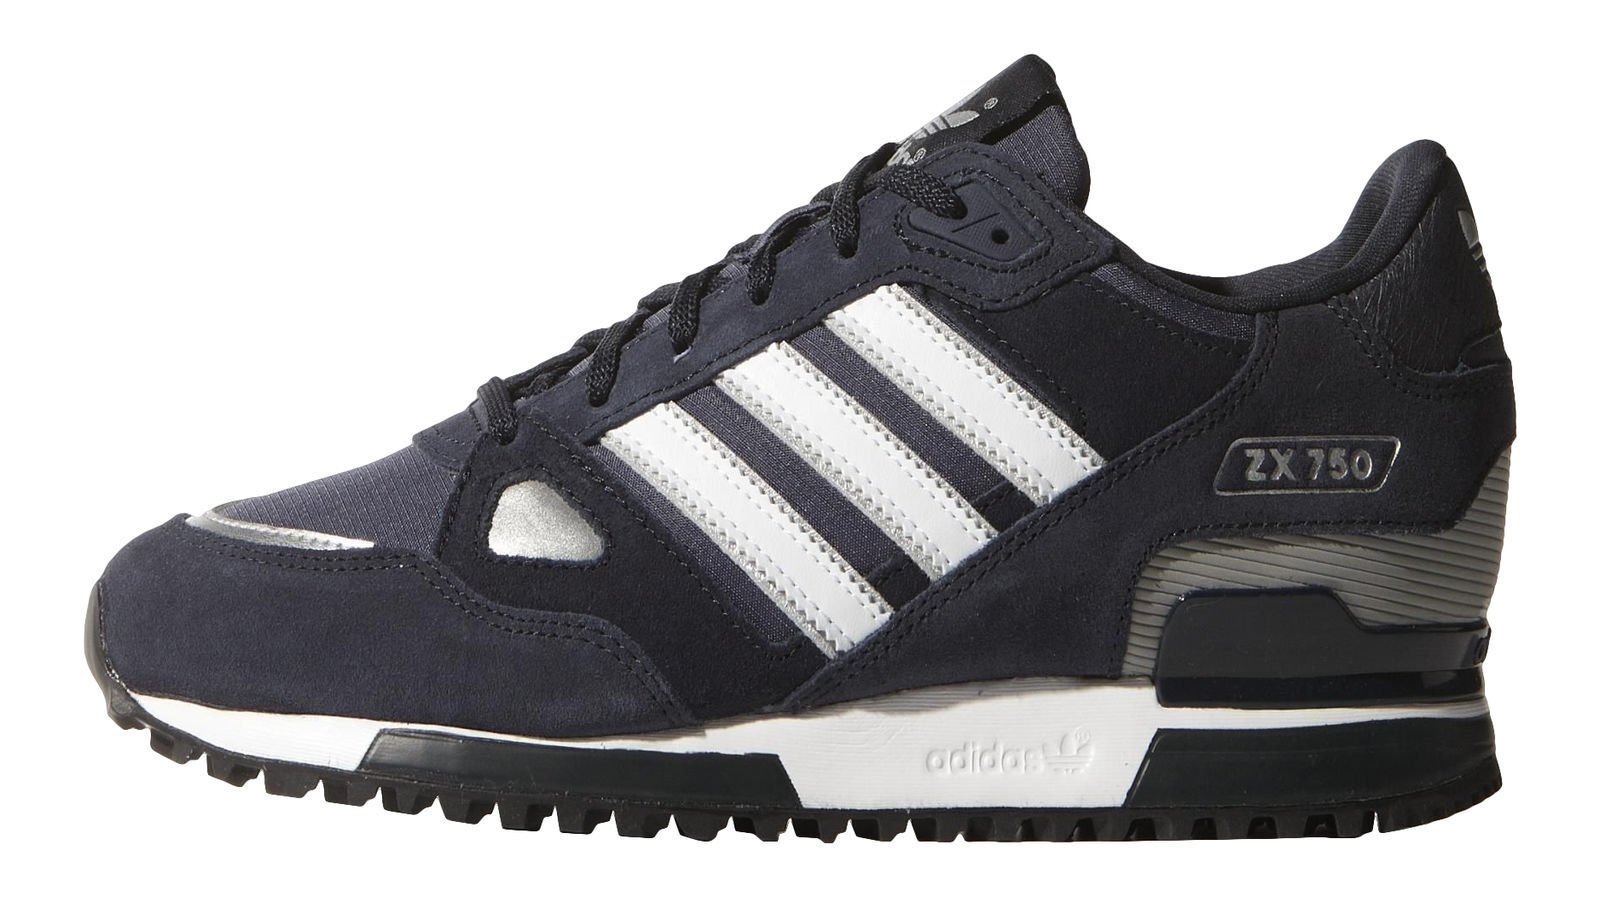 996ec6bf4 adidas Originals ZX 750 Men s Running Shoes